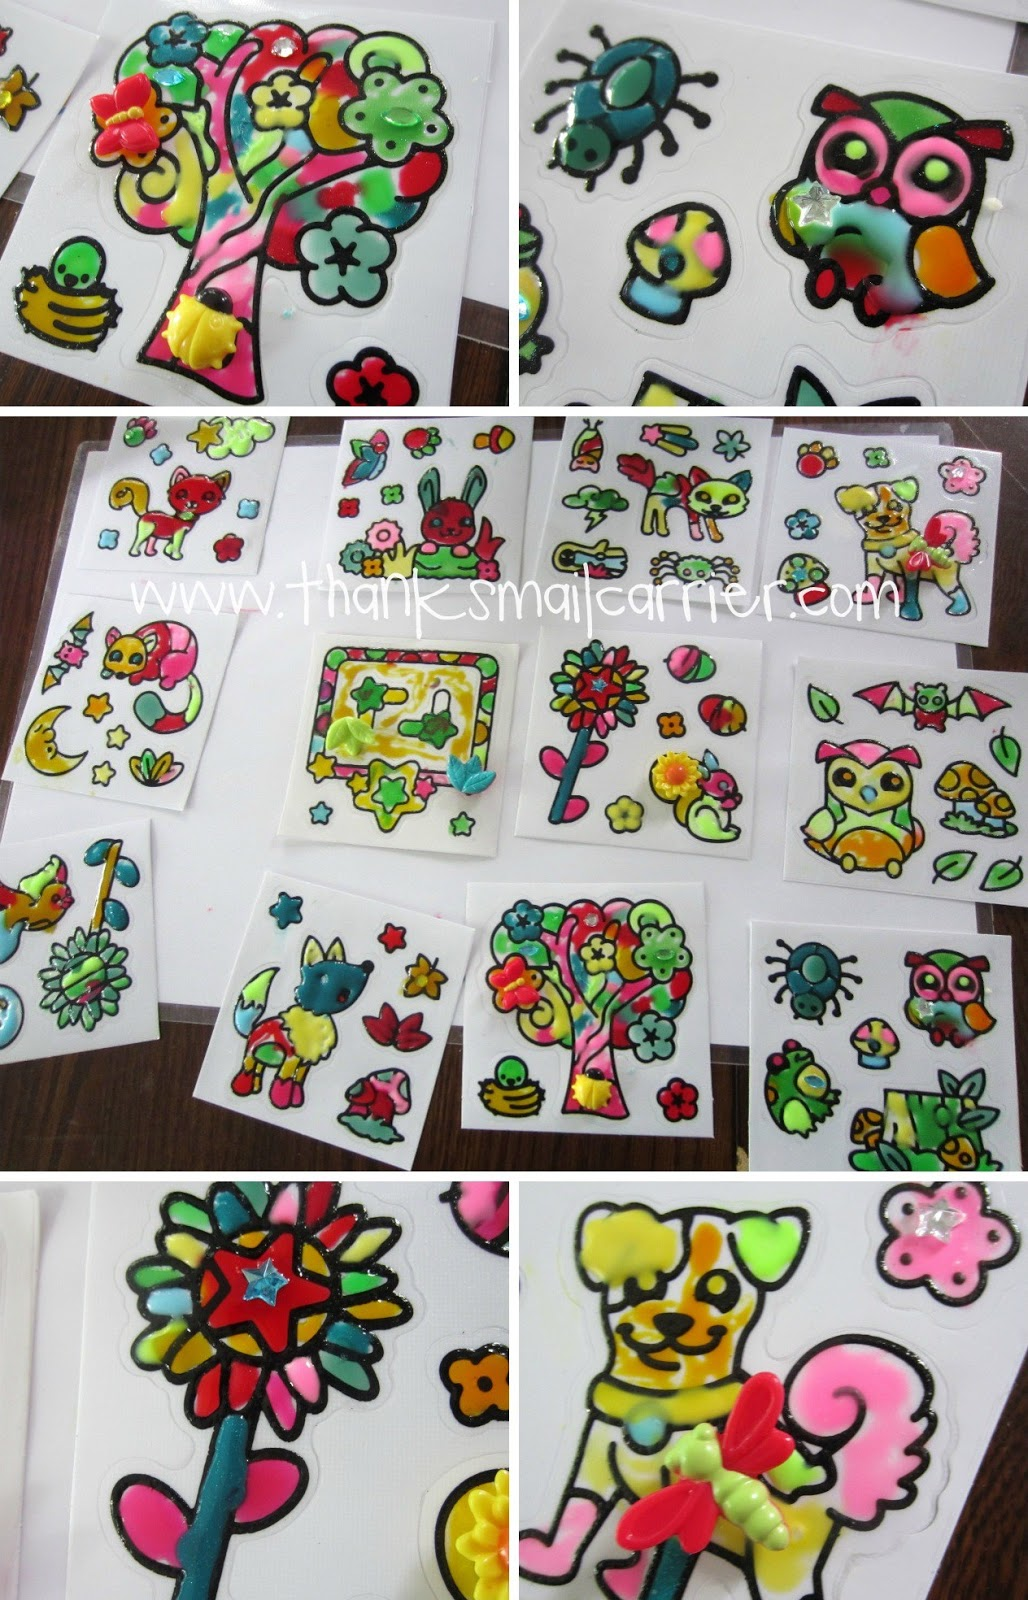 Gelarti stickers review